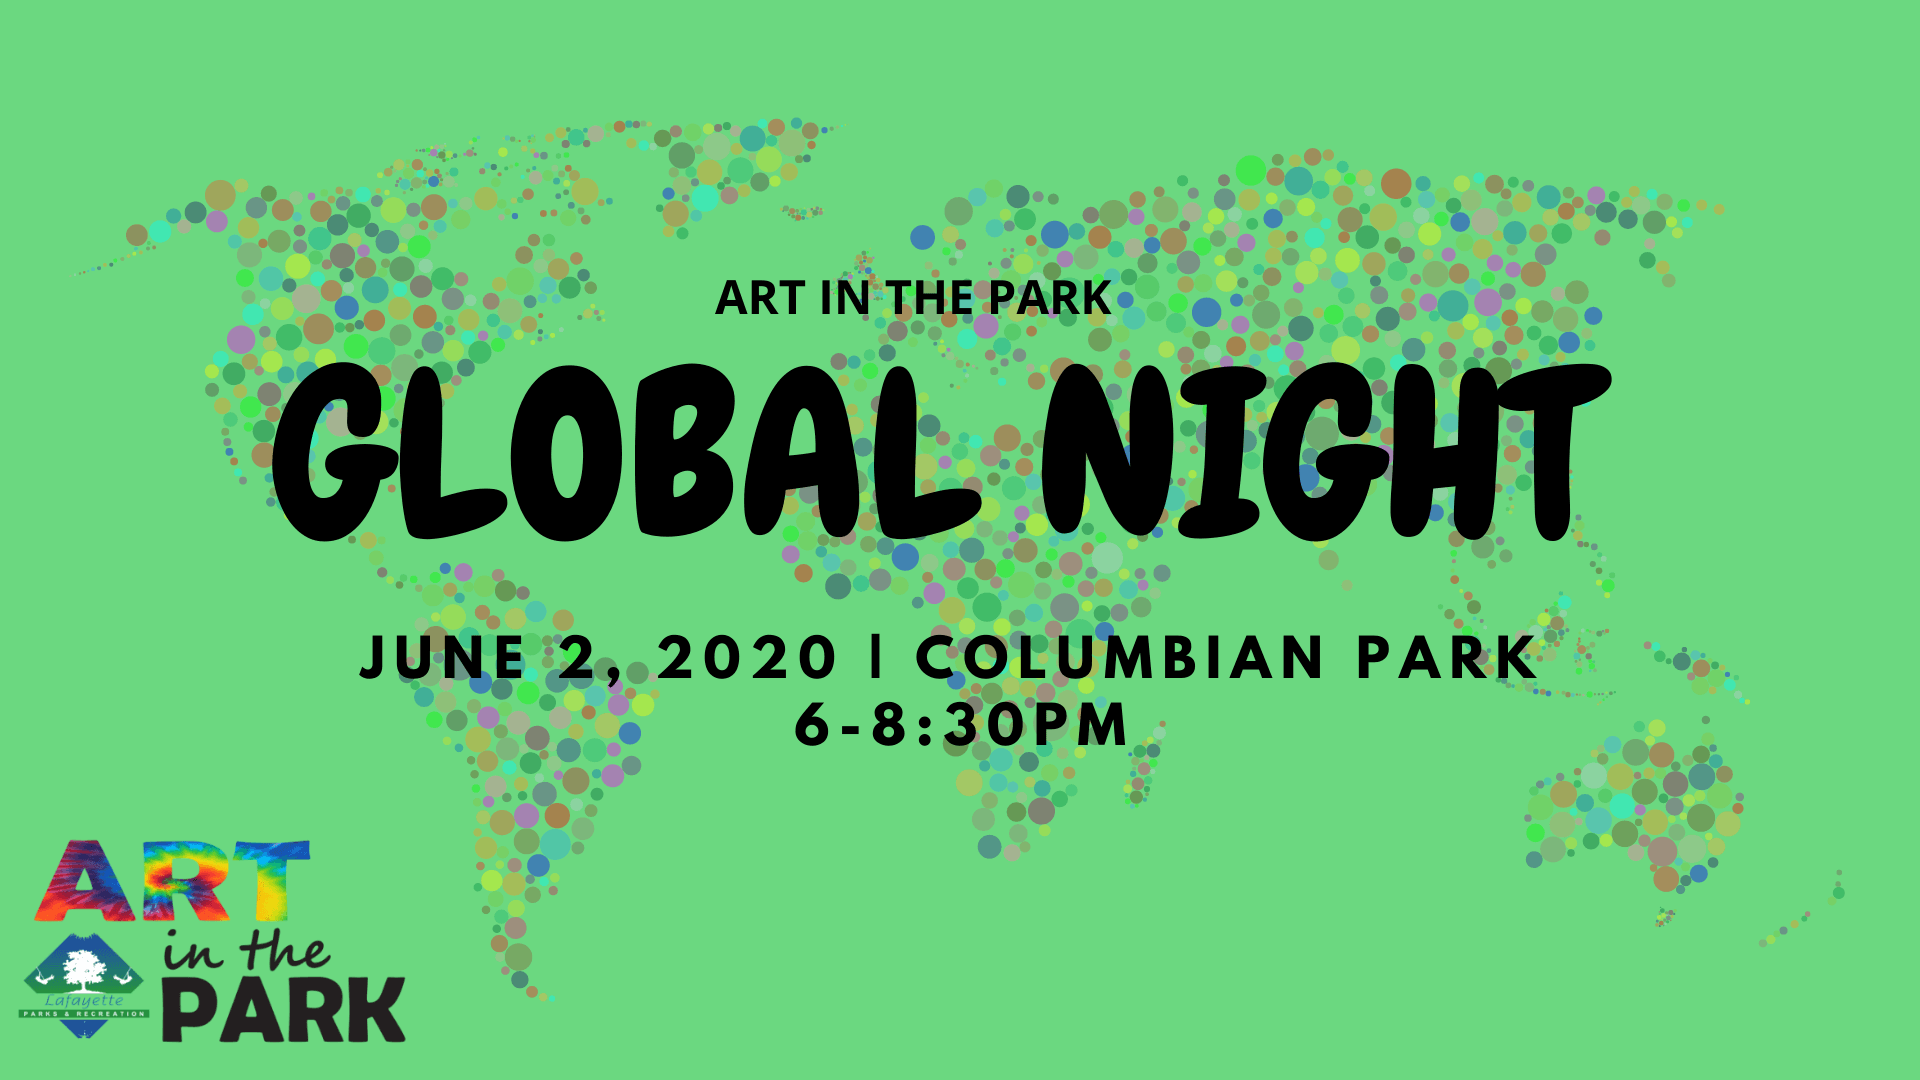 Art in the Park Global Night